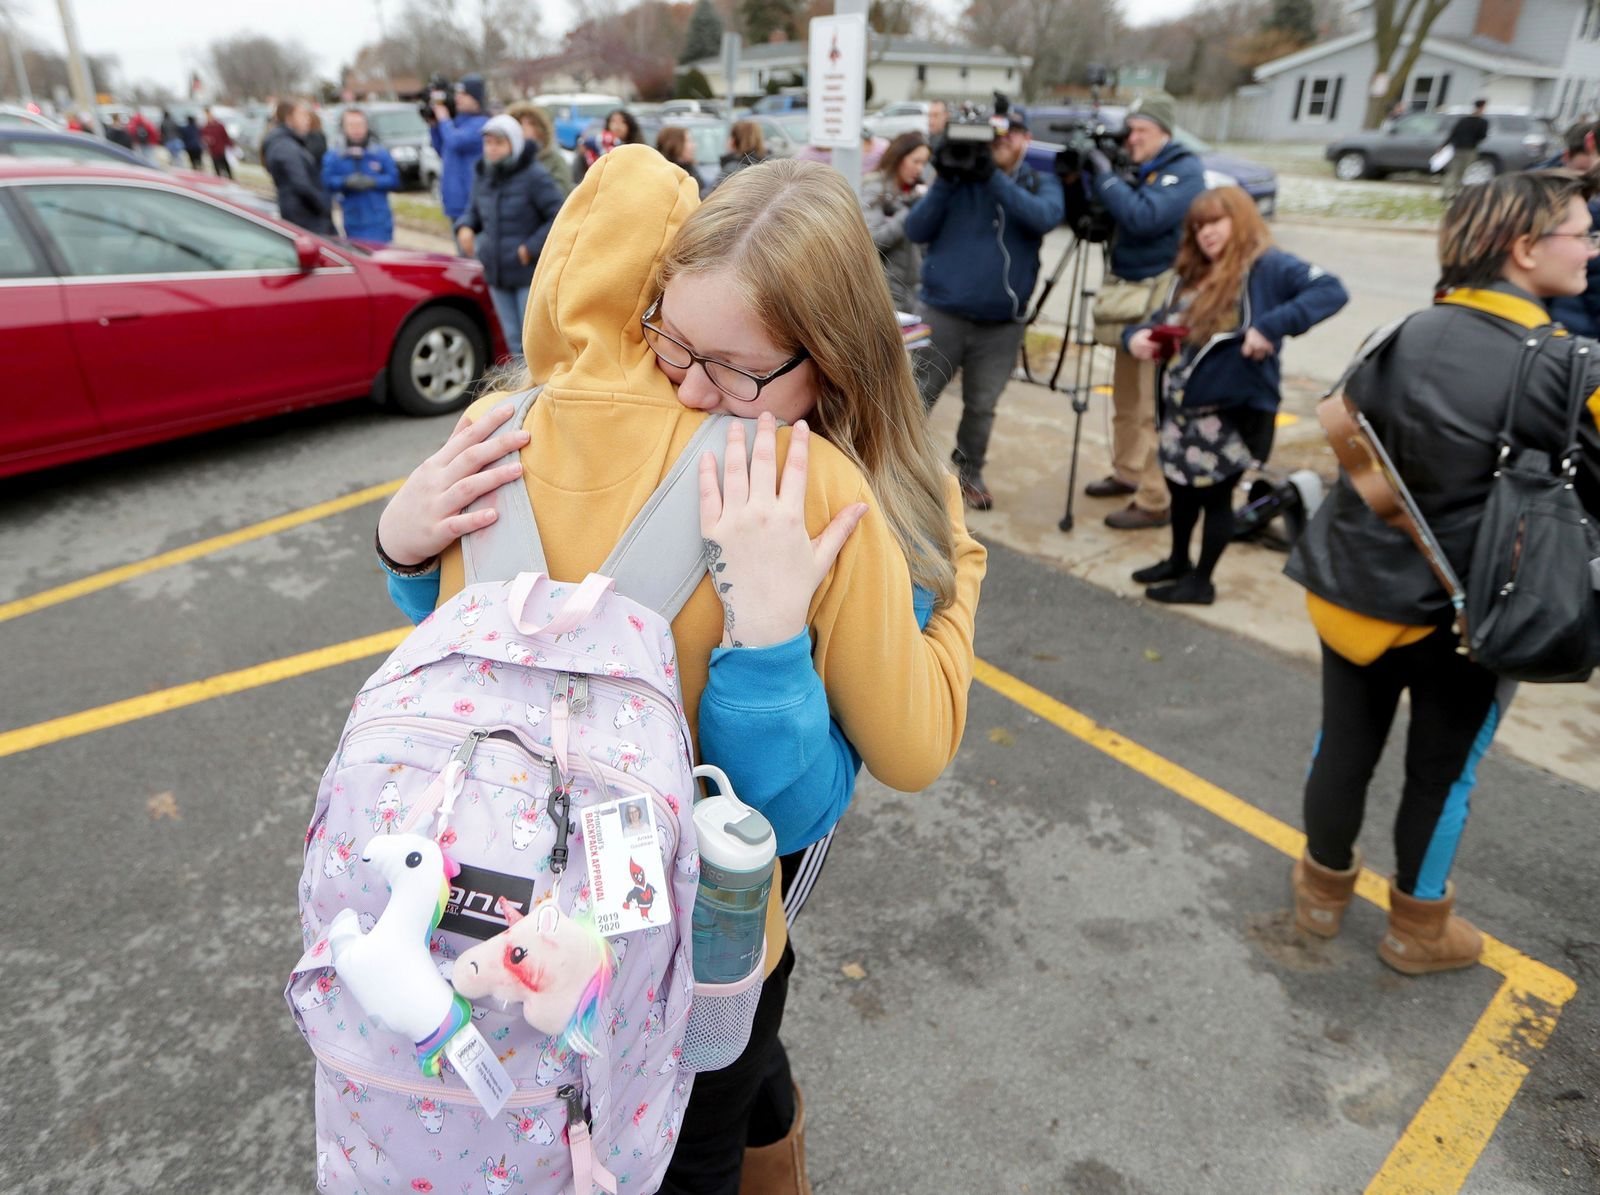 Alexis Grady, facing, a 17-year-old senior, hugs her friend Arissa Goodman outside Waukesha South High School in Waukesha, Wis., on Monday, Dec. 2, 2019.{ } (Mike De Sisti/Milwaukee Journal-Sentinel via AP)